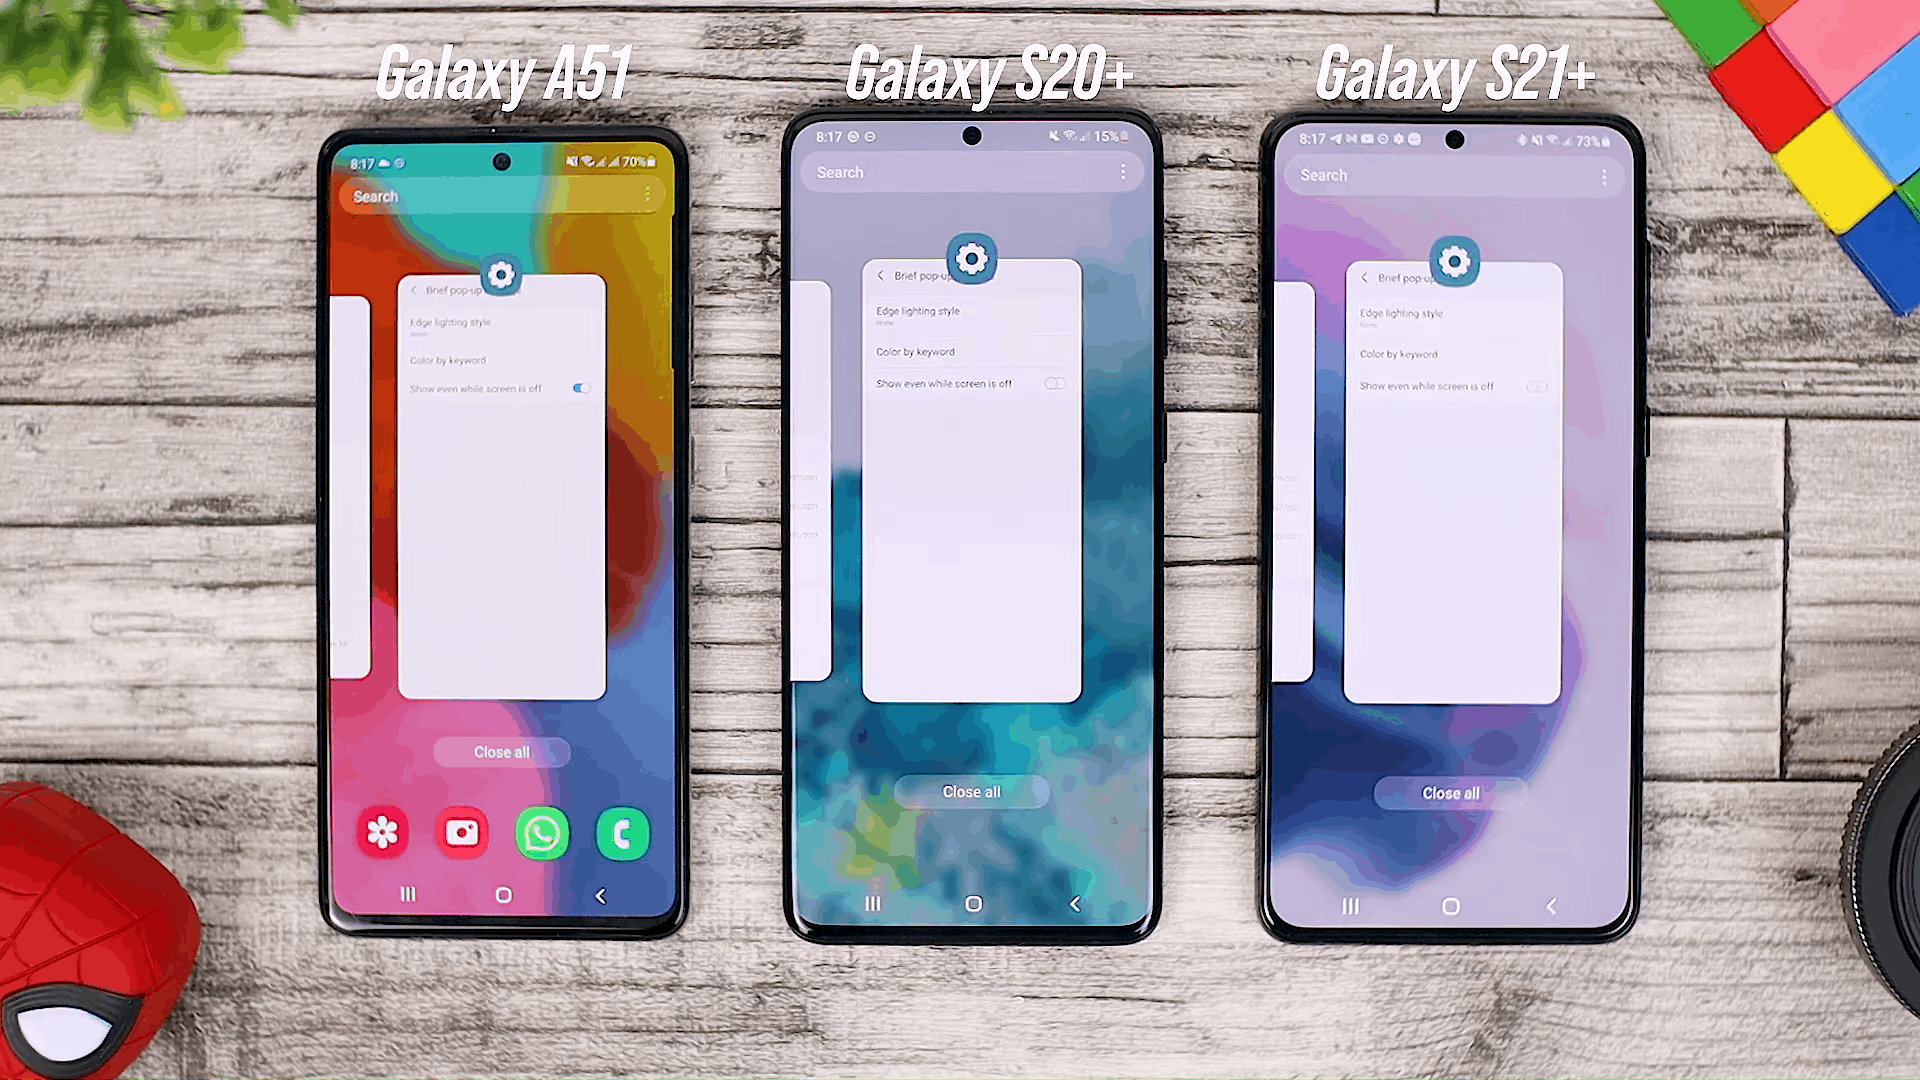 Recent Apps - One UI 3.0 features of Samsung Galaxy A51 and its comparison with the Galaxy S20+ and One UI 3.1 on the Galaxy S21+